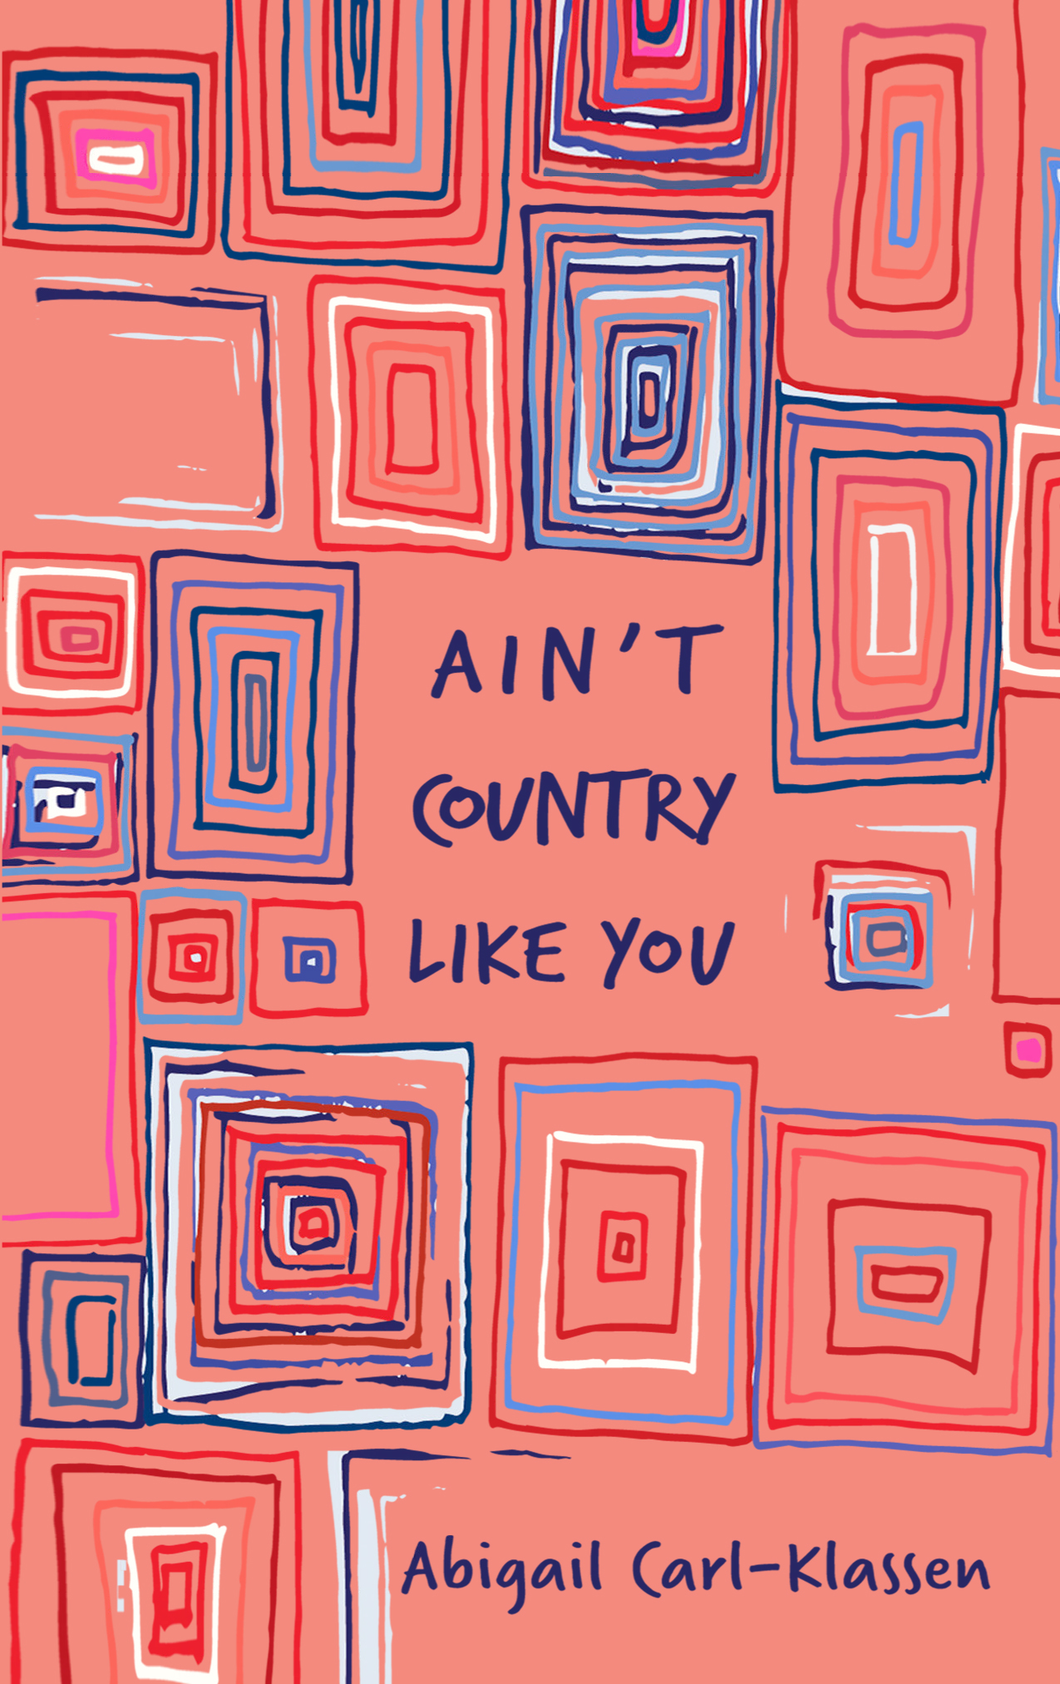 Ain't Country Like You by Abigail Carl-Klassen